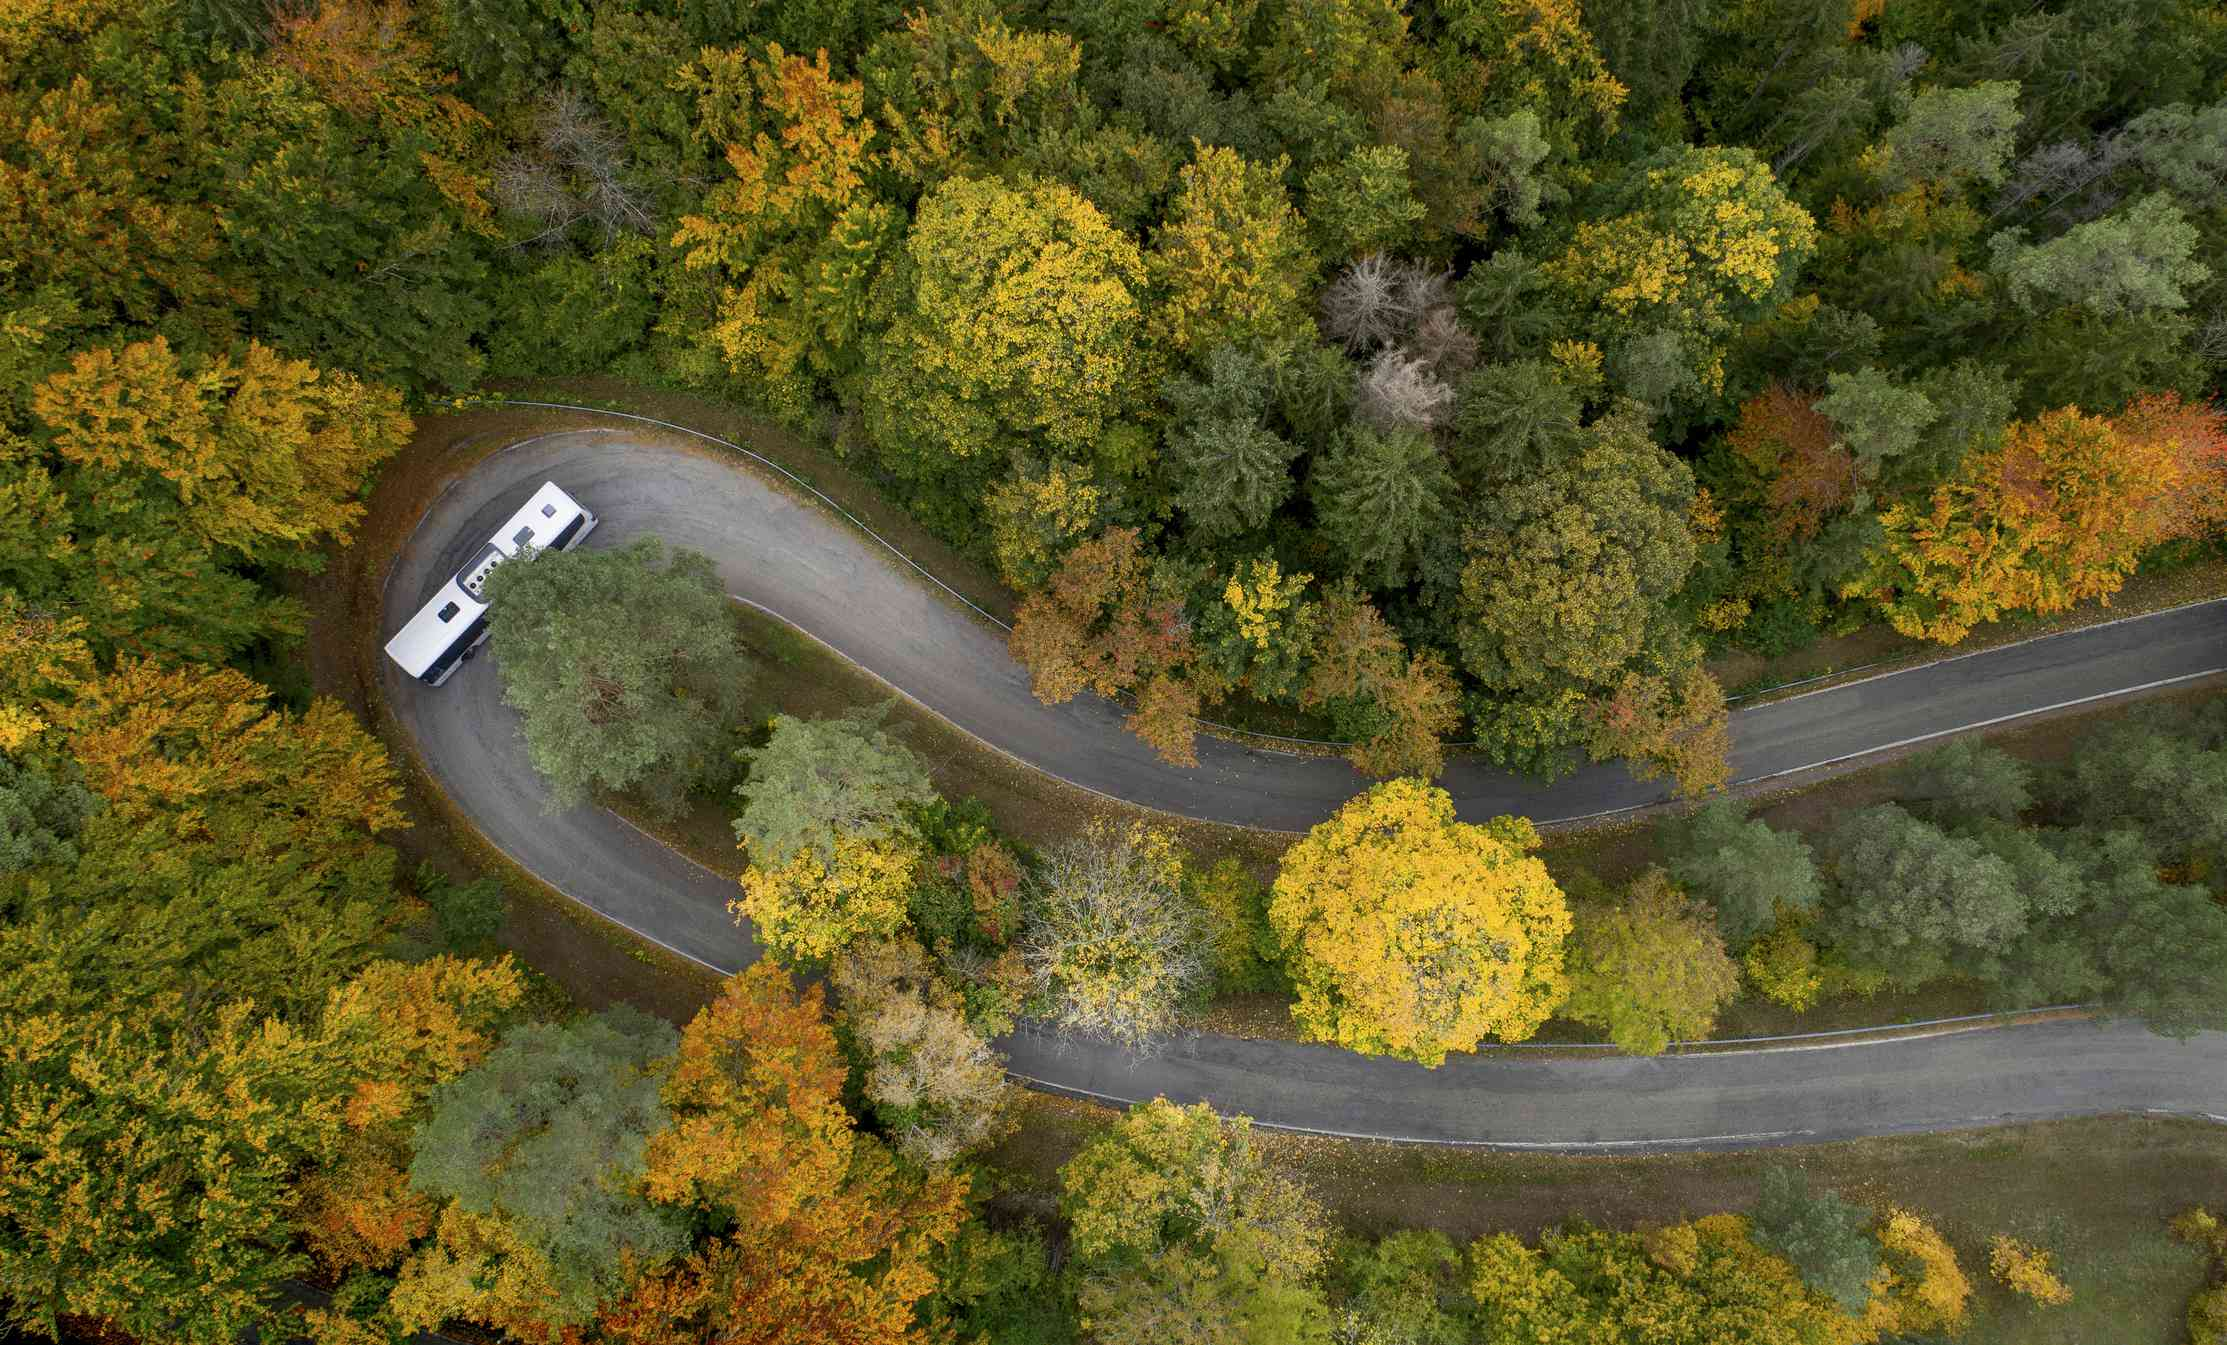 Hairpin curve on a country road in autumn with bus driving